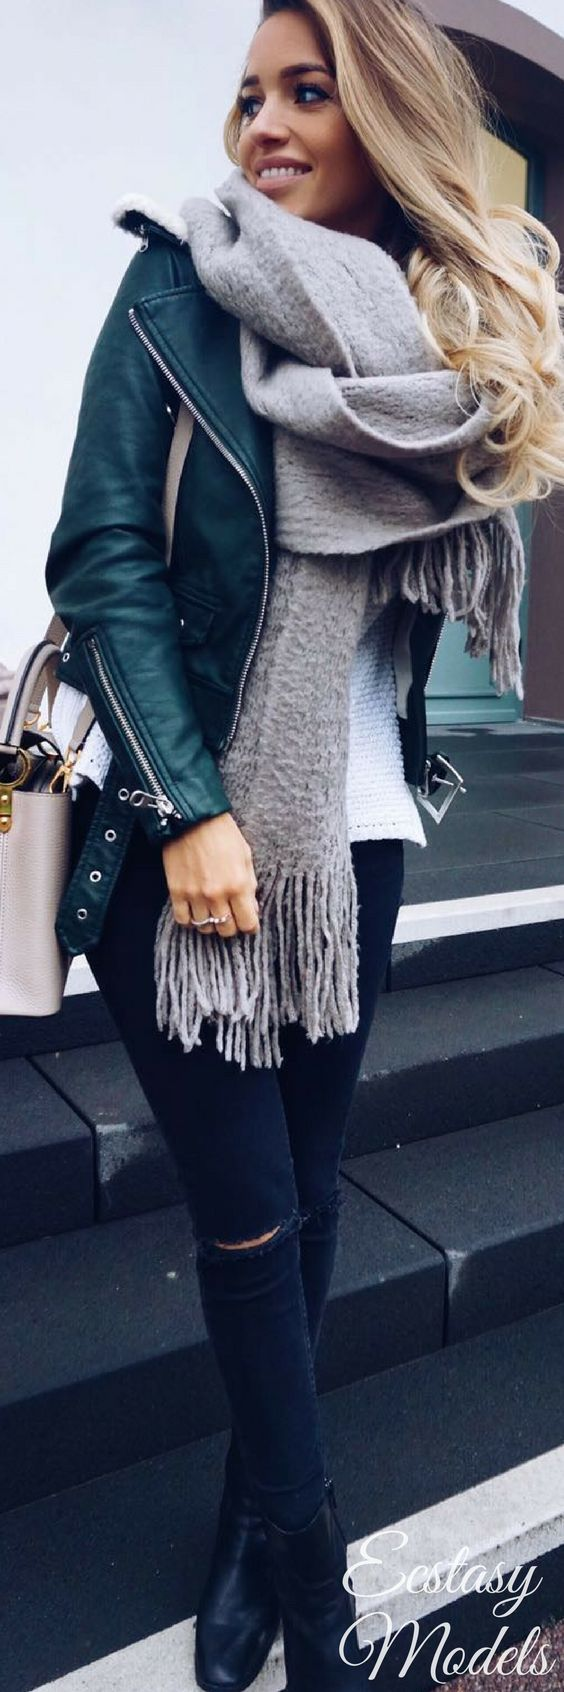 80b314aabeb3 Let's get some awesome inspiration with these 25 Pretty Winter Outfits to  Try this Year.